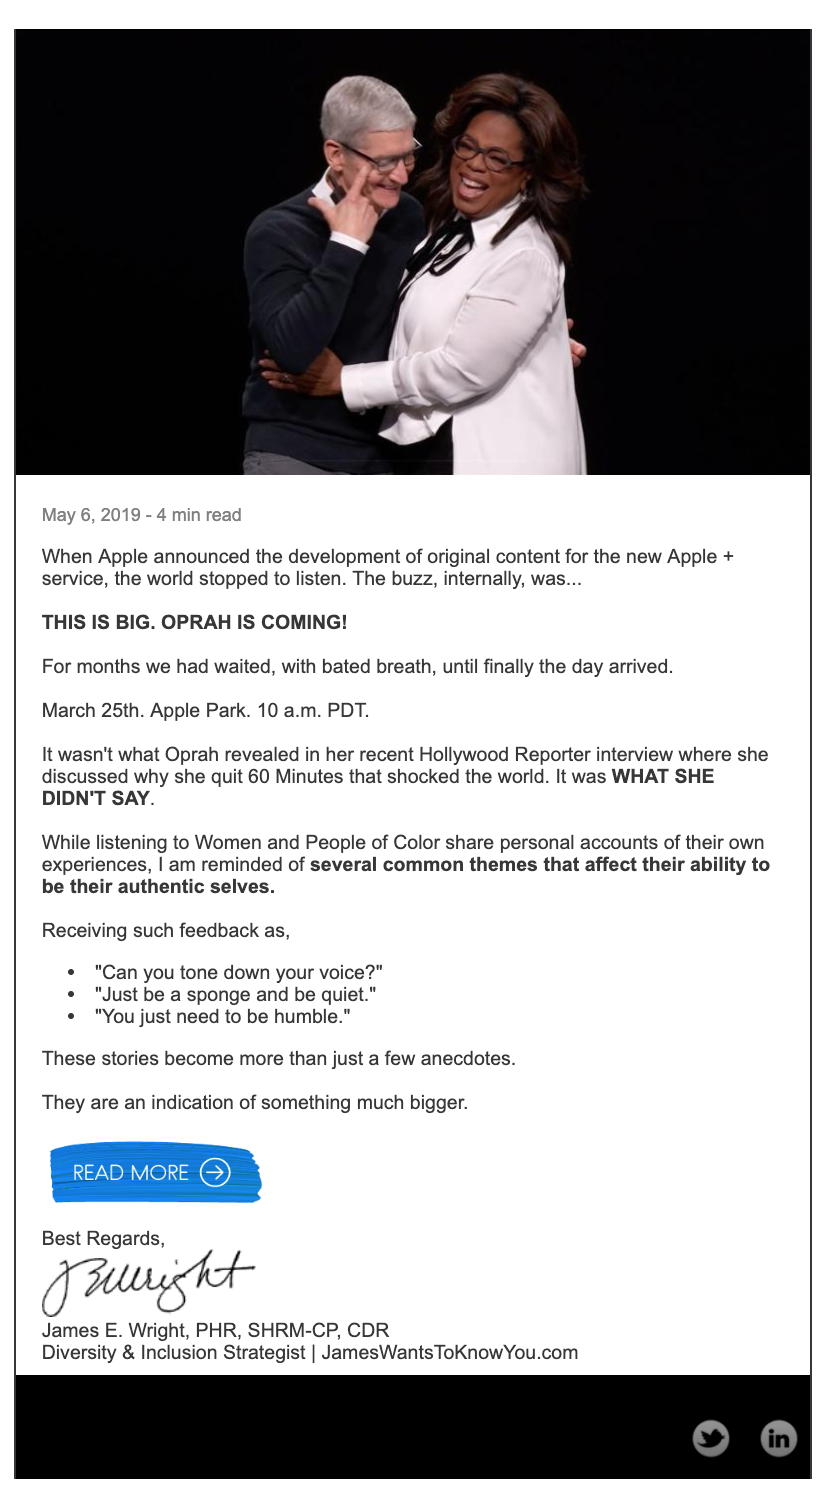 What Oprah Didn't Say Article